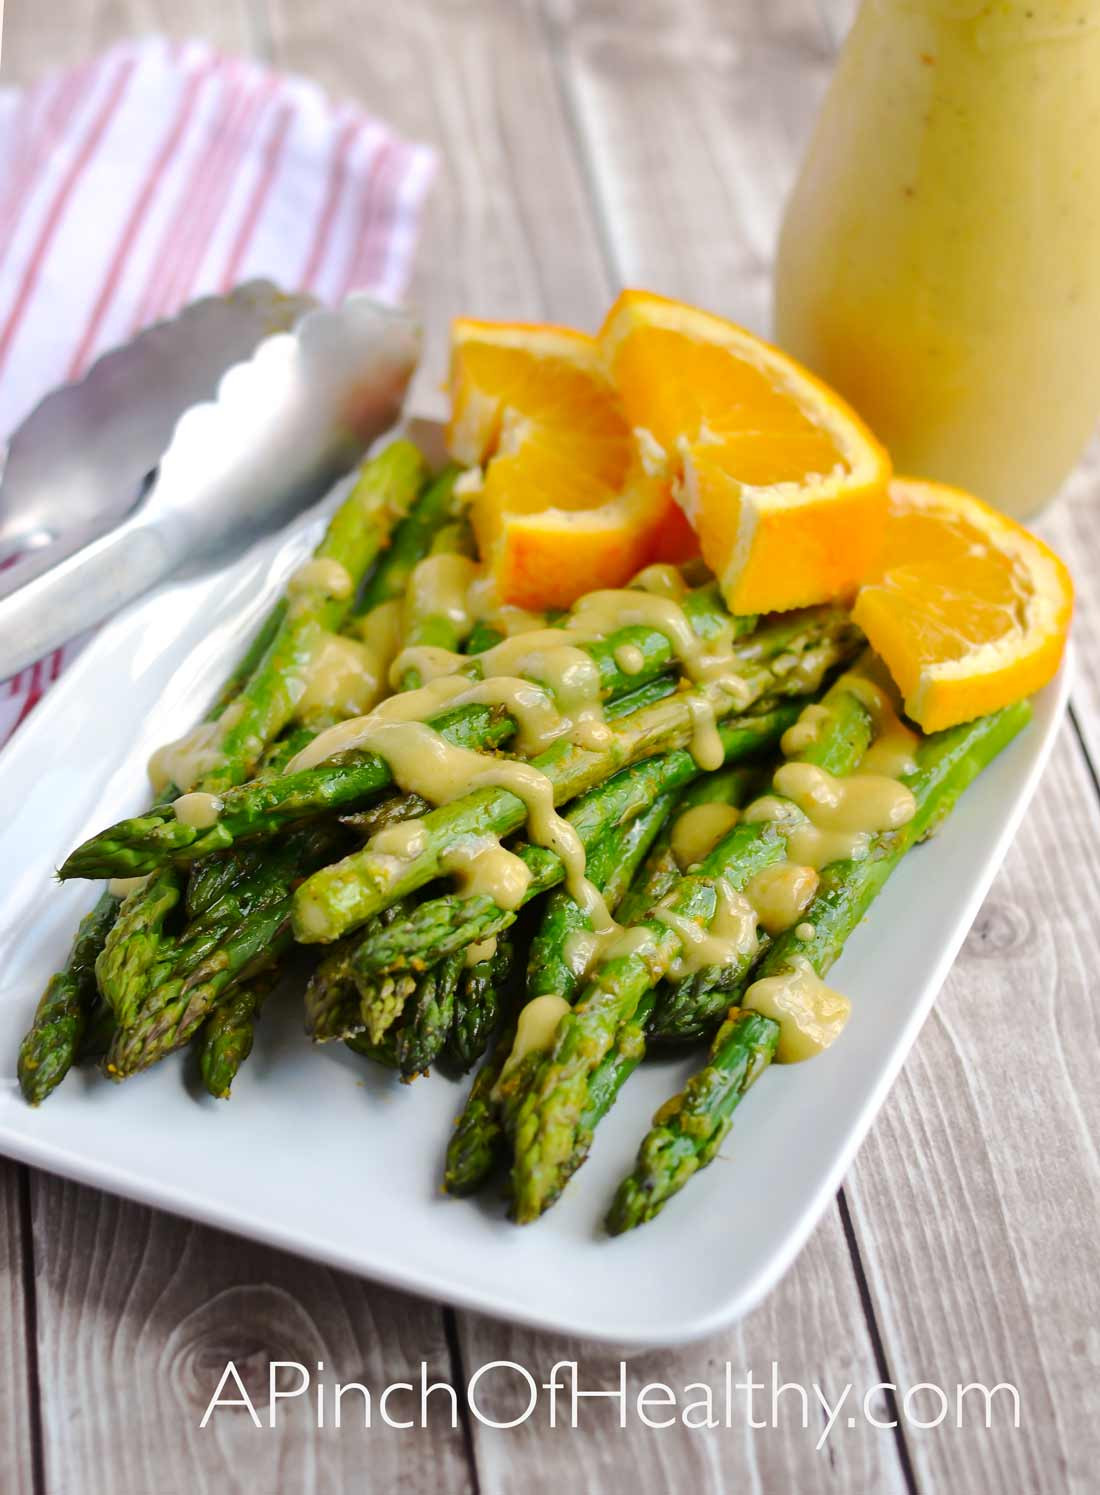 Is Asparagus Healthy  Roasted Asparagus with Orange Vinaigrette A Pinch of Healthy